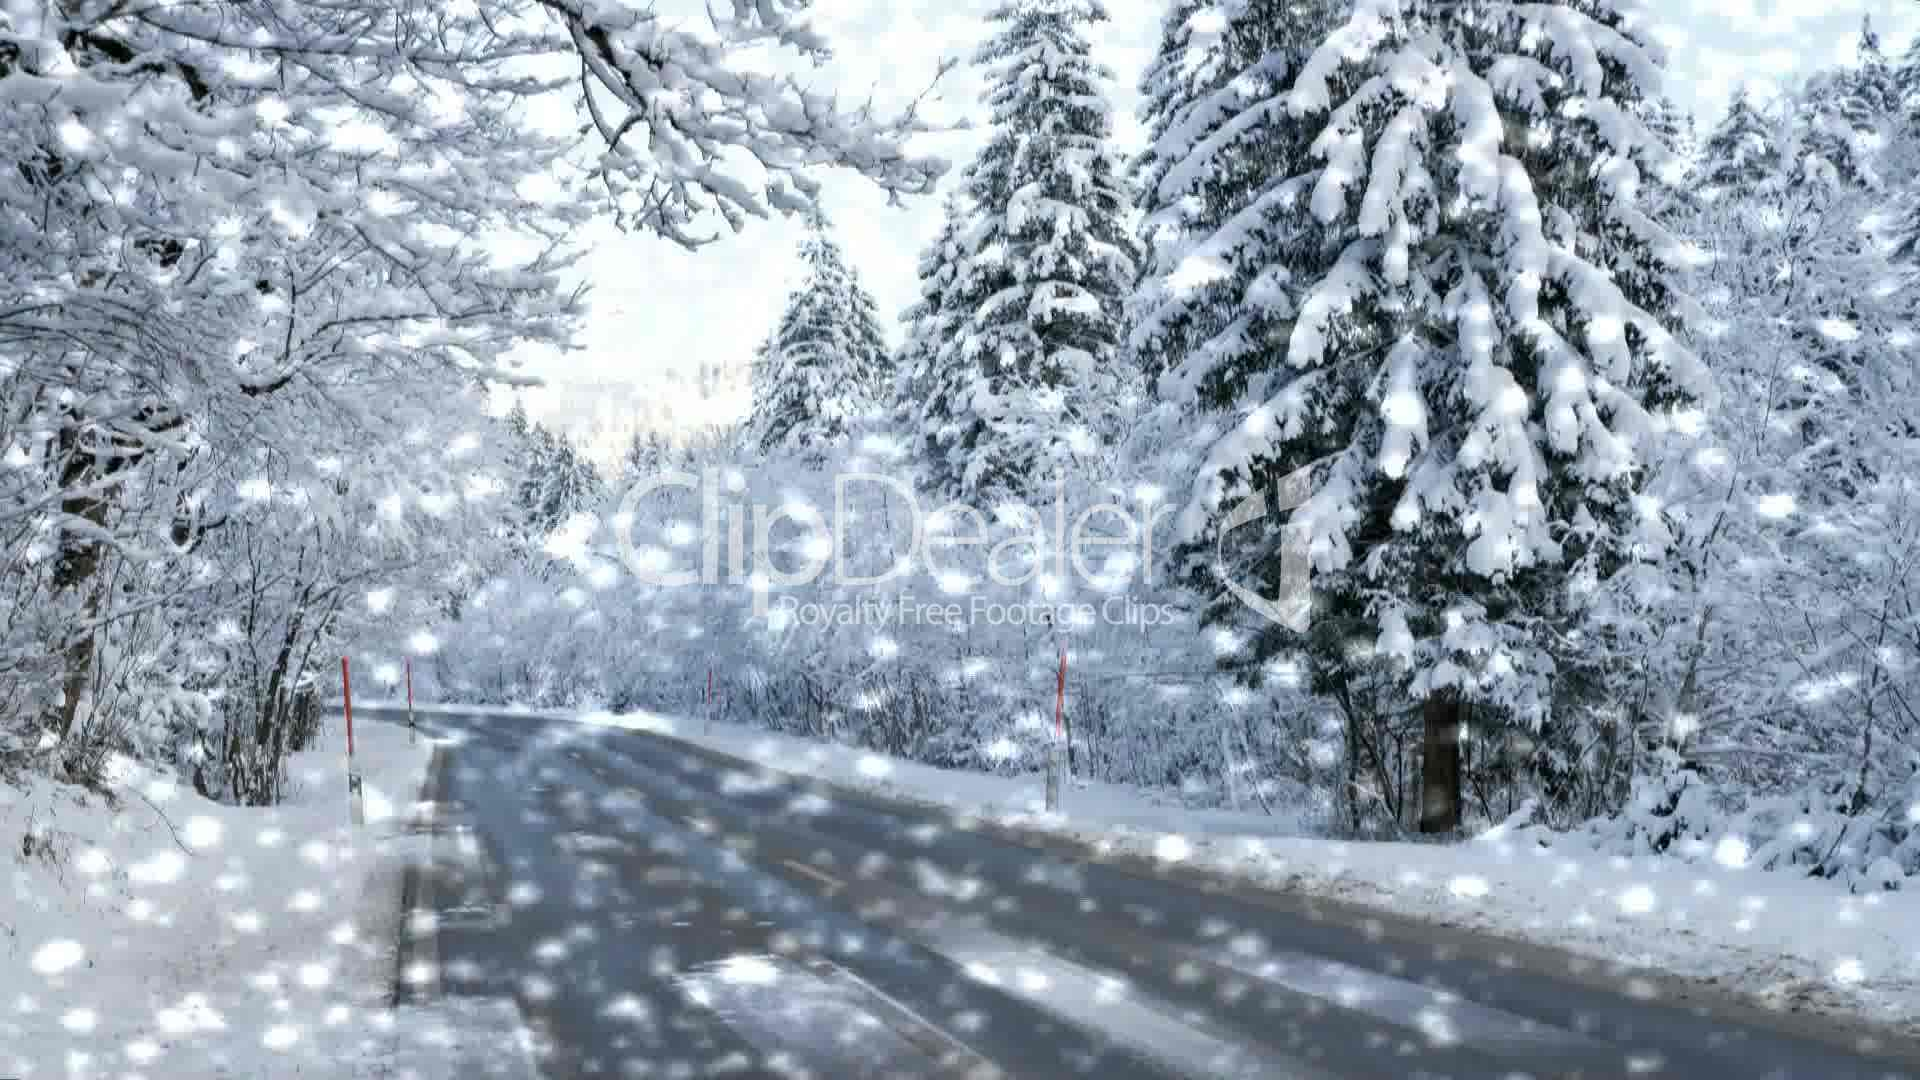 Federal Tires Dealer >> Straße im Winter mit Schneefall - Street Winter with Snow: Royalty-free video and stock footage